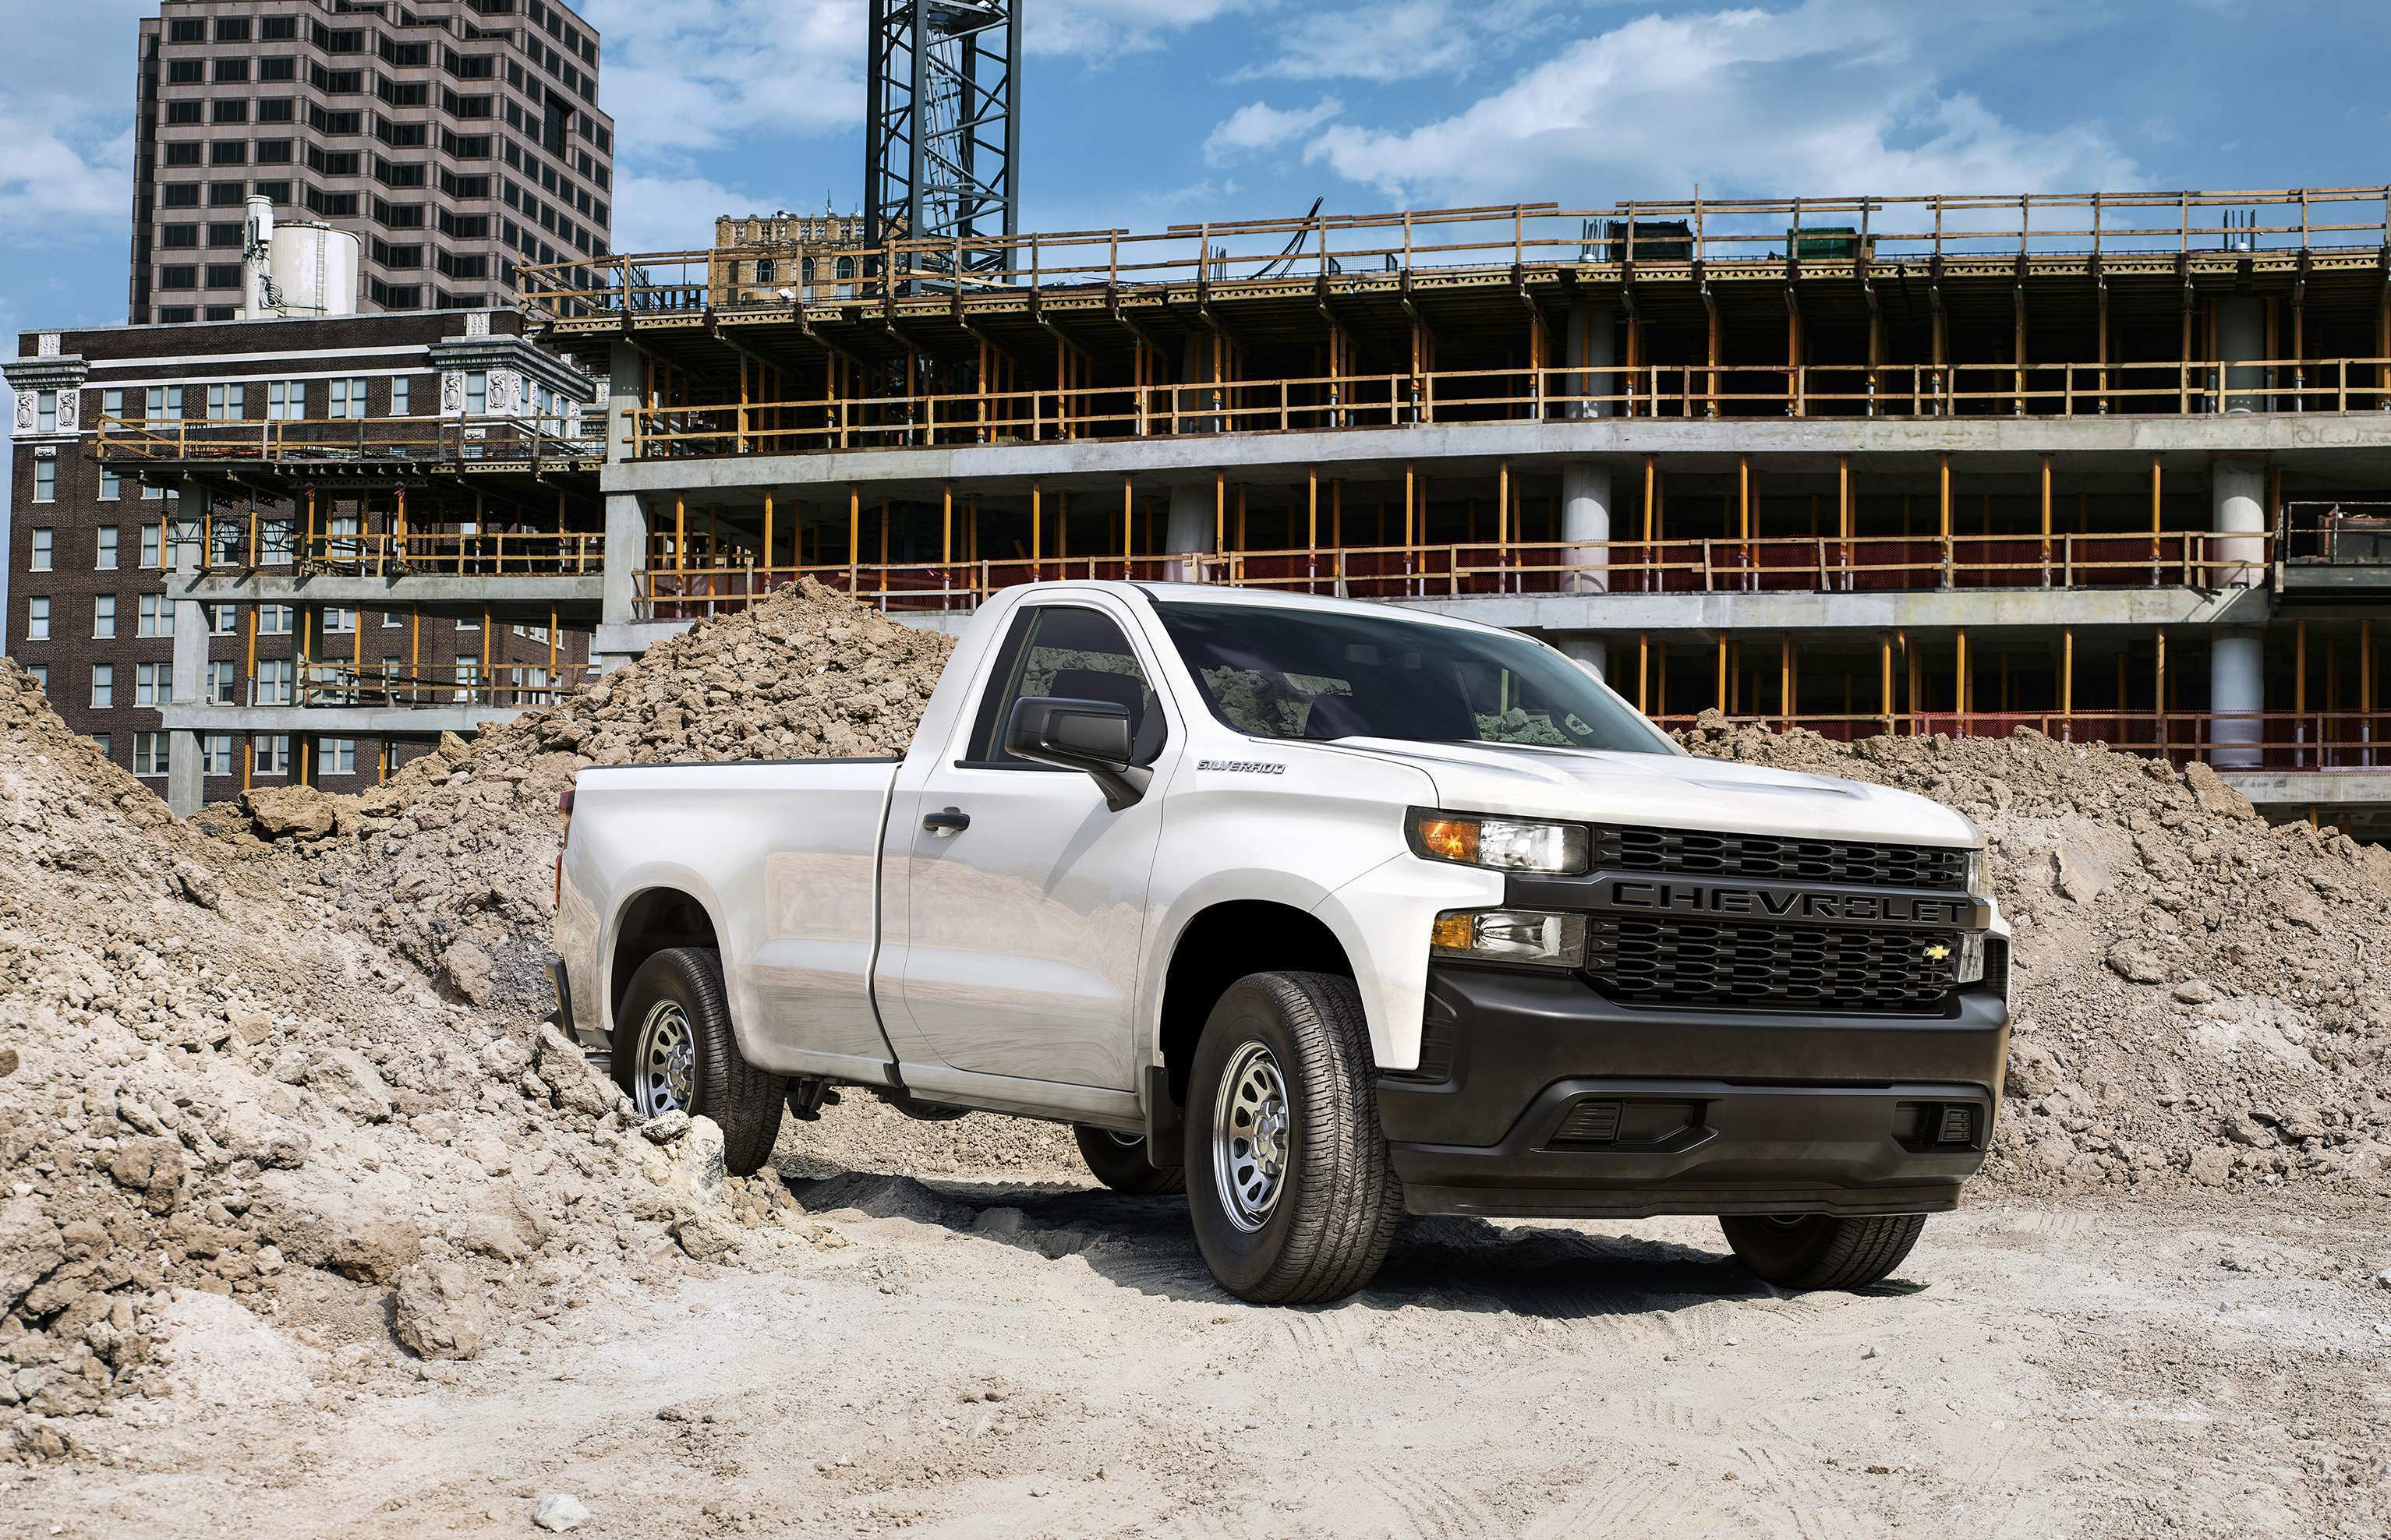 35 New 2020 Chevrolet Pickup Price with 2020 Chevrolet Pickup